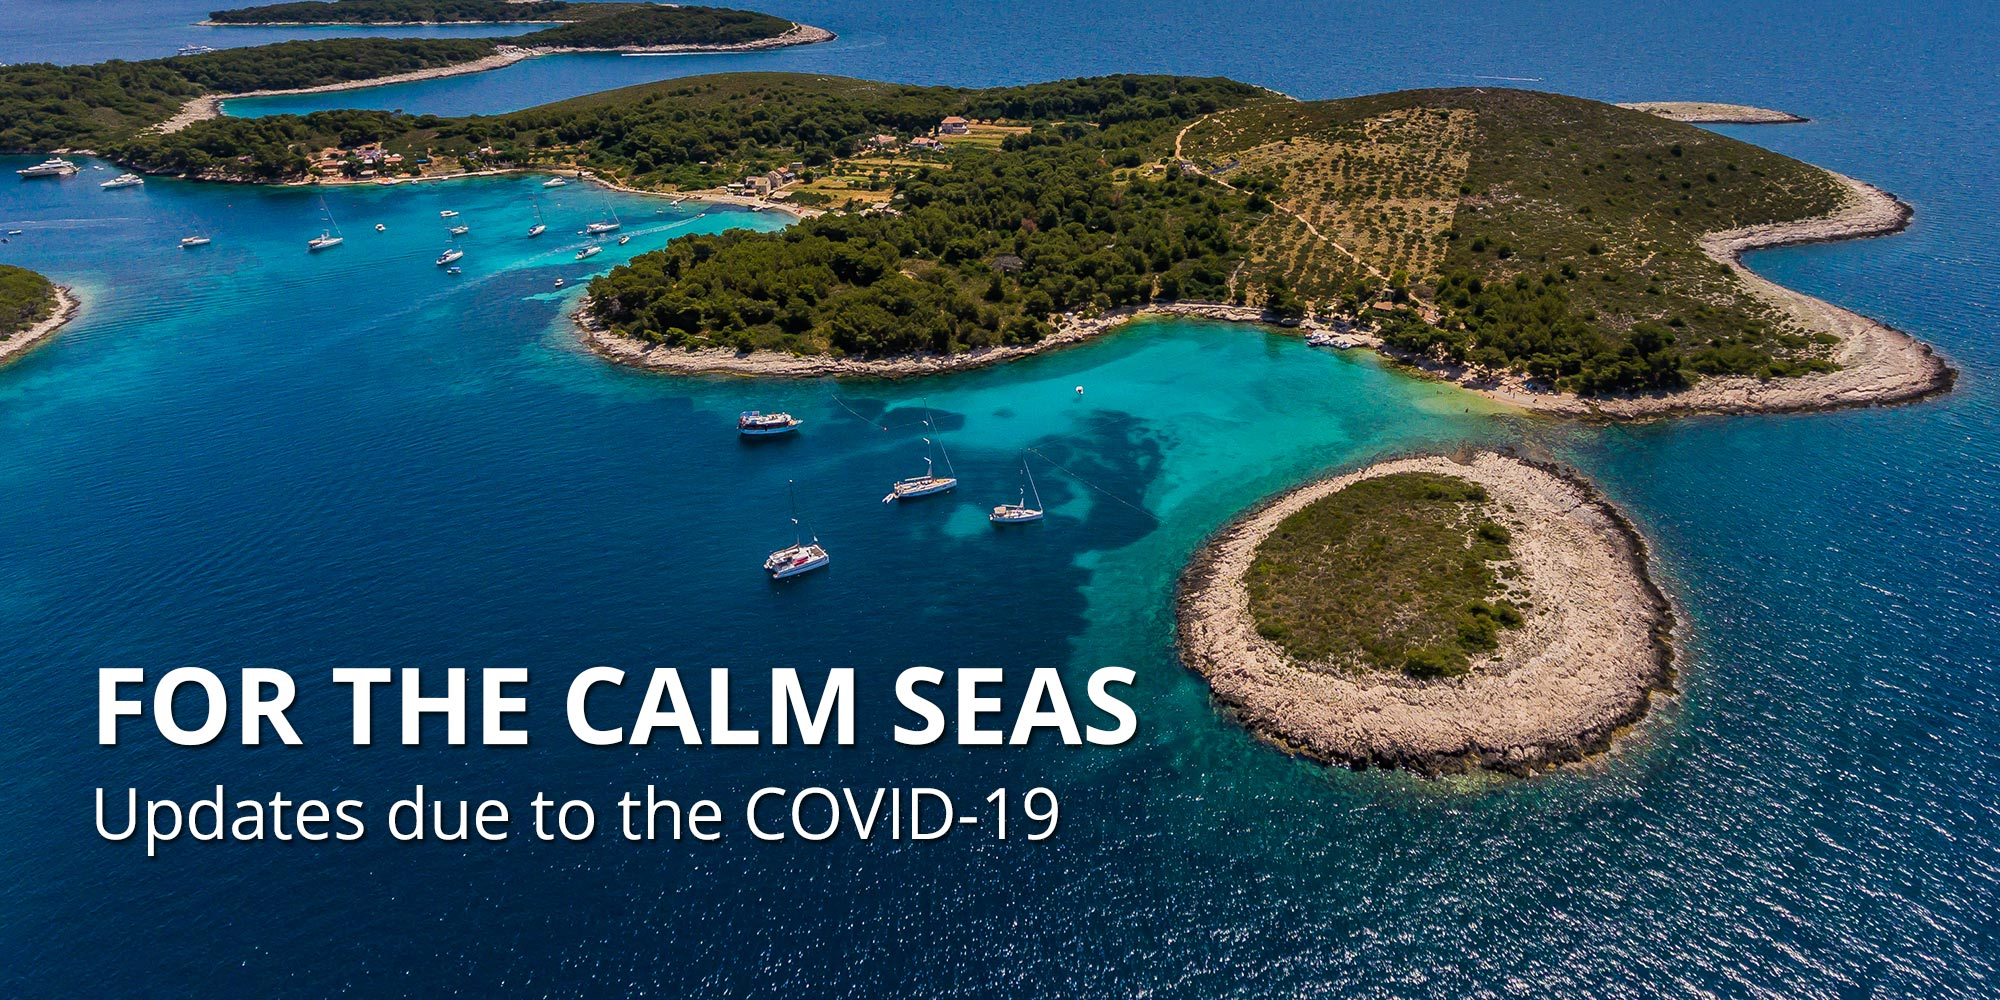 For the calm seas - Updates due to the COVID-19